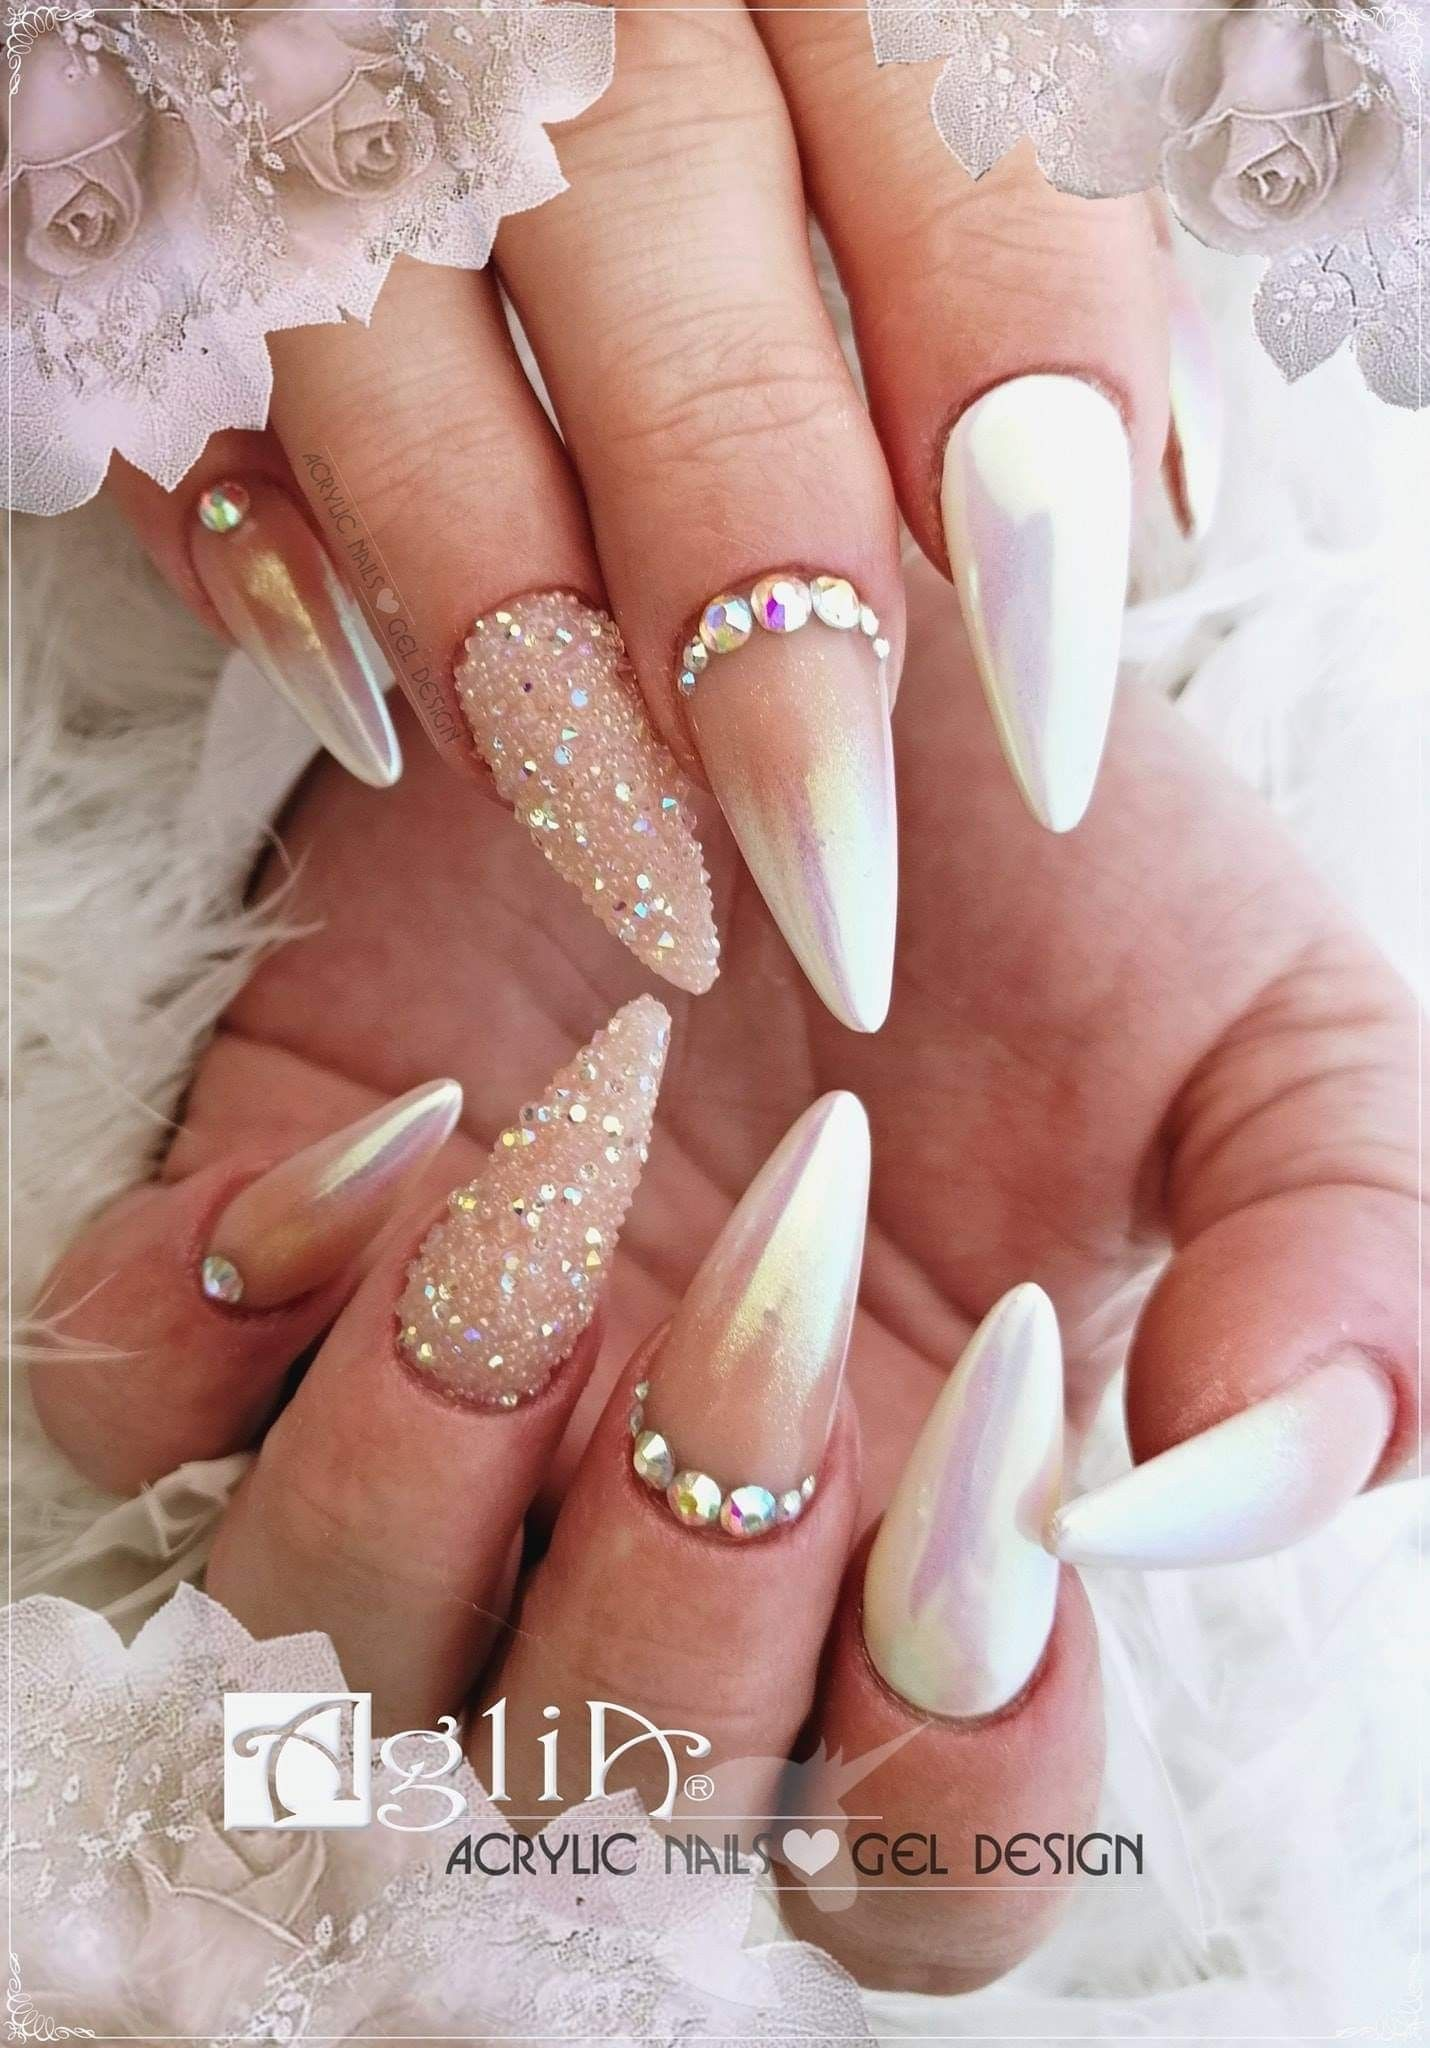 Acrylic Nails Gel Design Unicorn Ombre Work Nails Gel Nails Nails